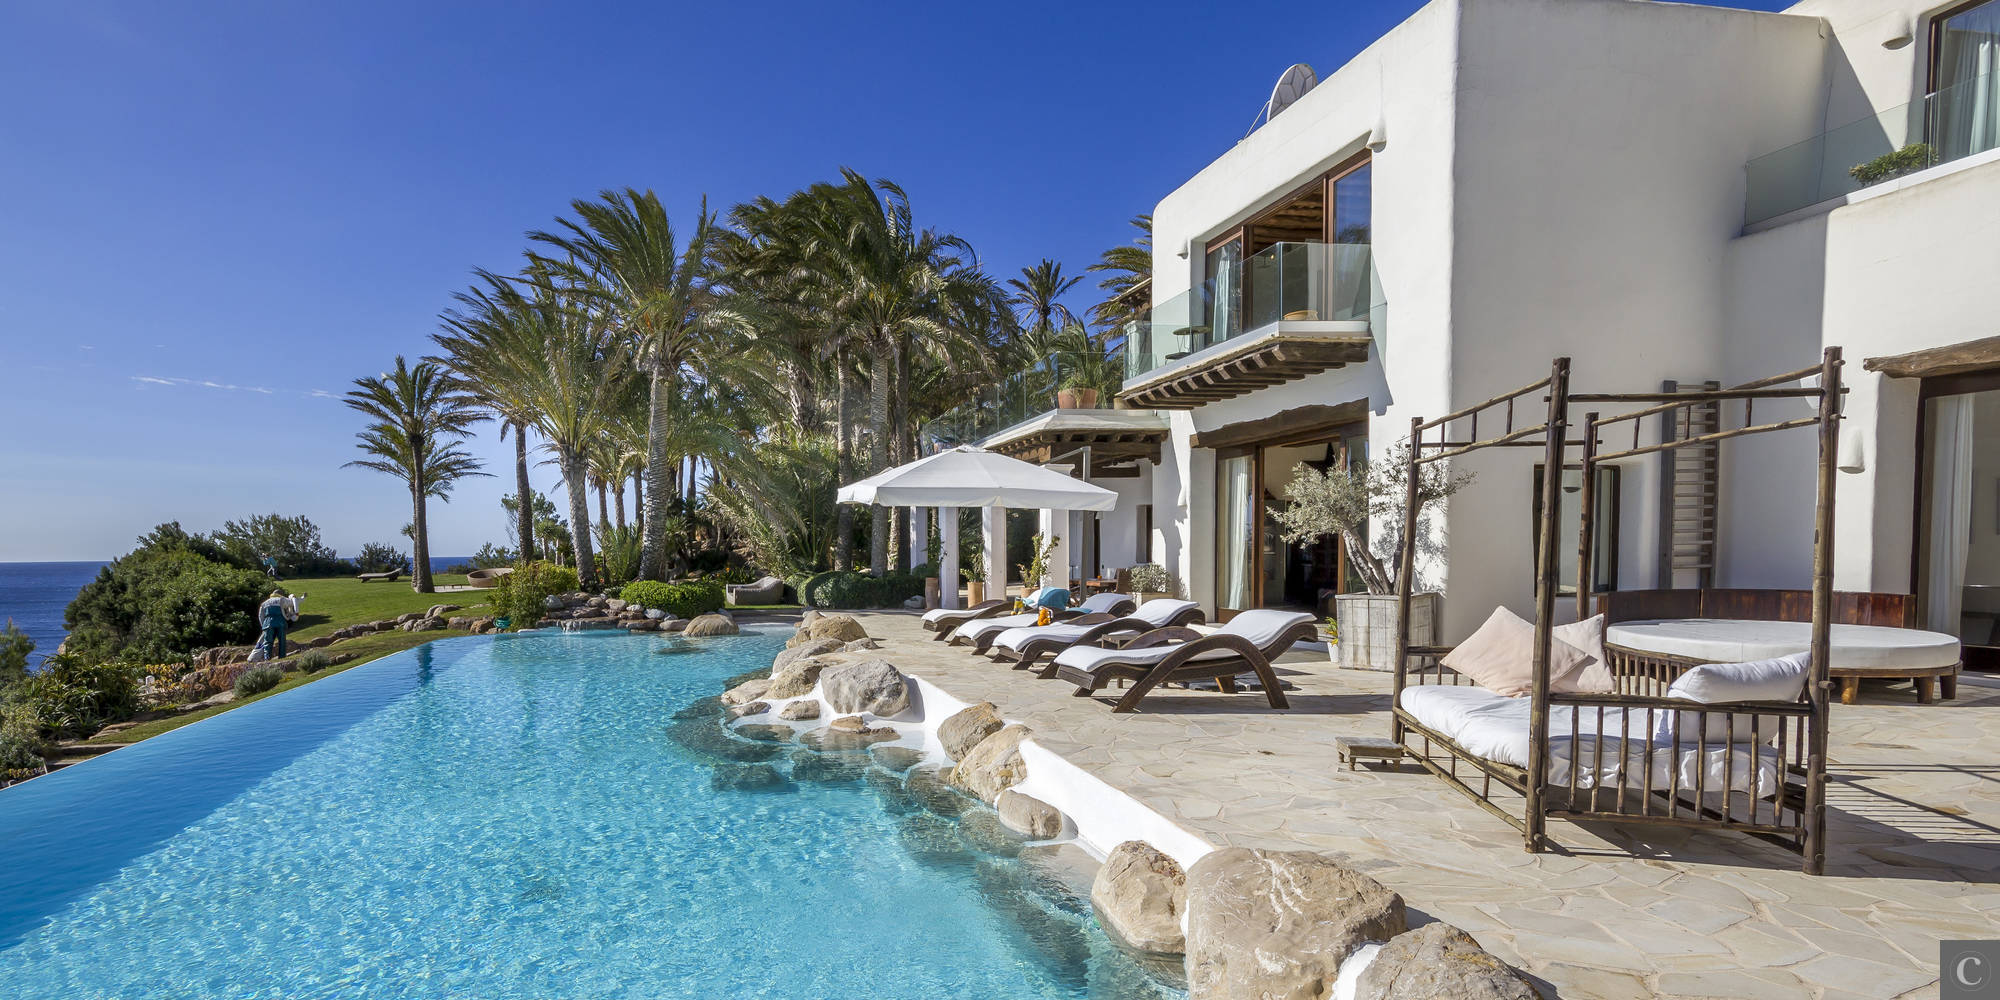 This Villa Can Be Yours For Just €125K A Week